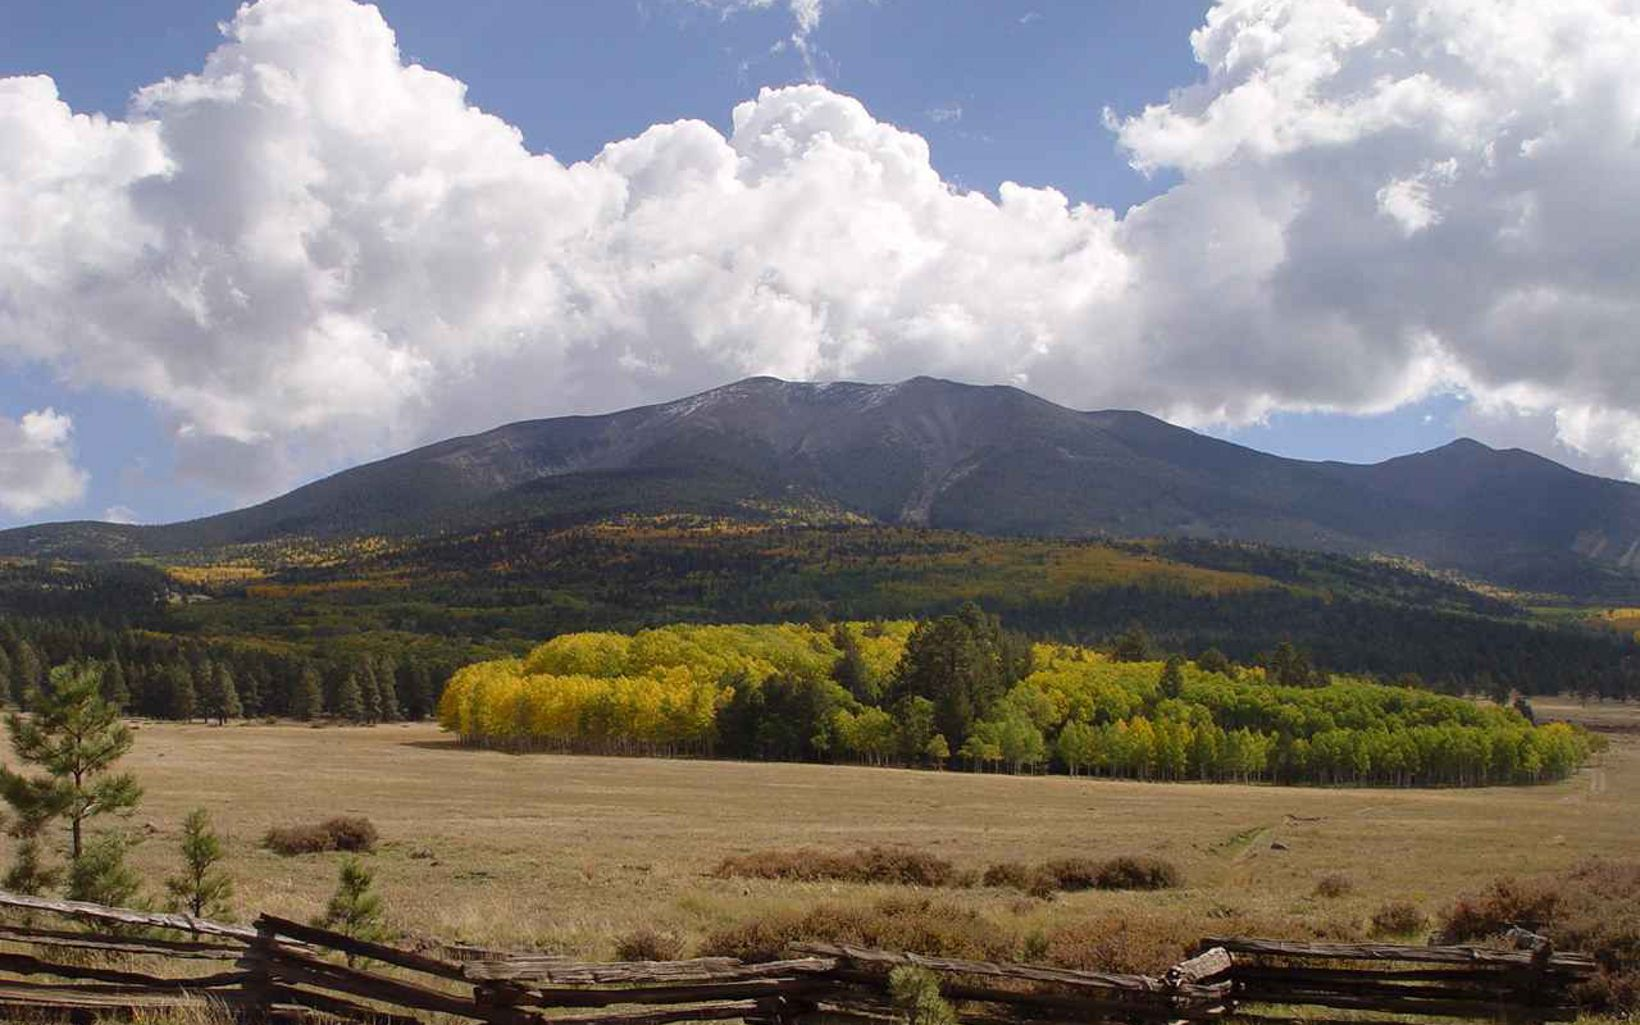 Beyond a rustic lateral wood fence, a browning meadow and yellow and green trees stand beneath the San Francisco peaks in the distance.